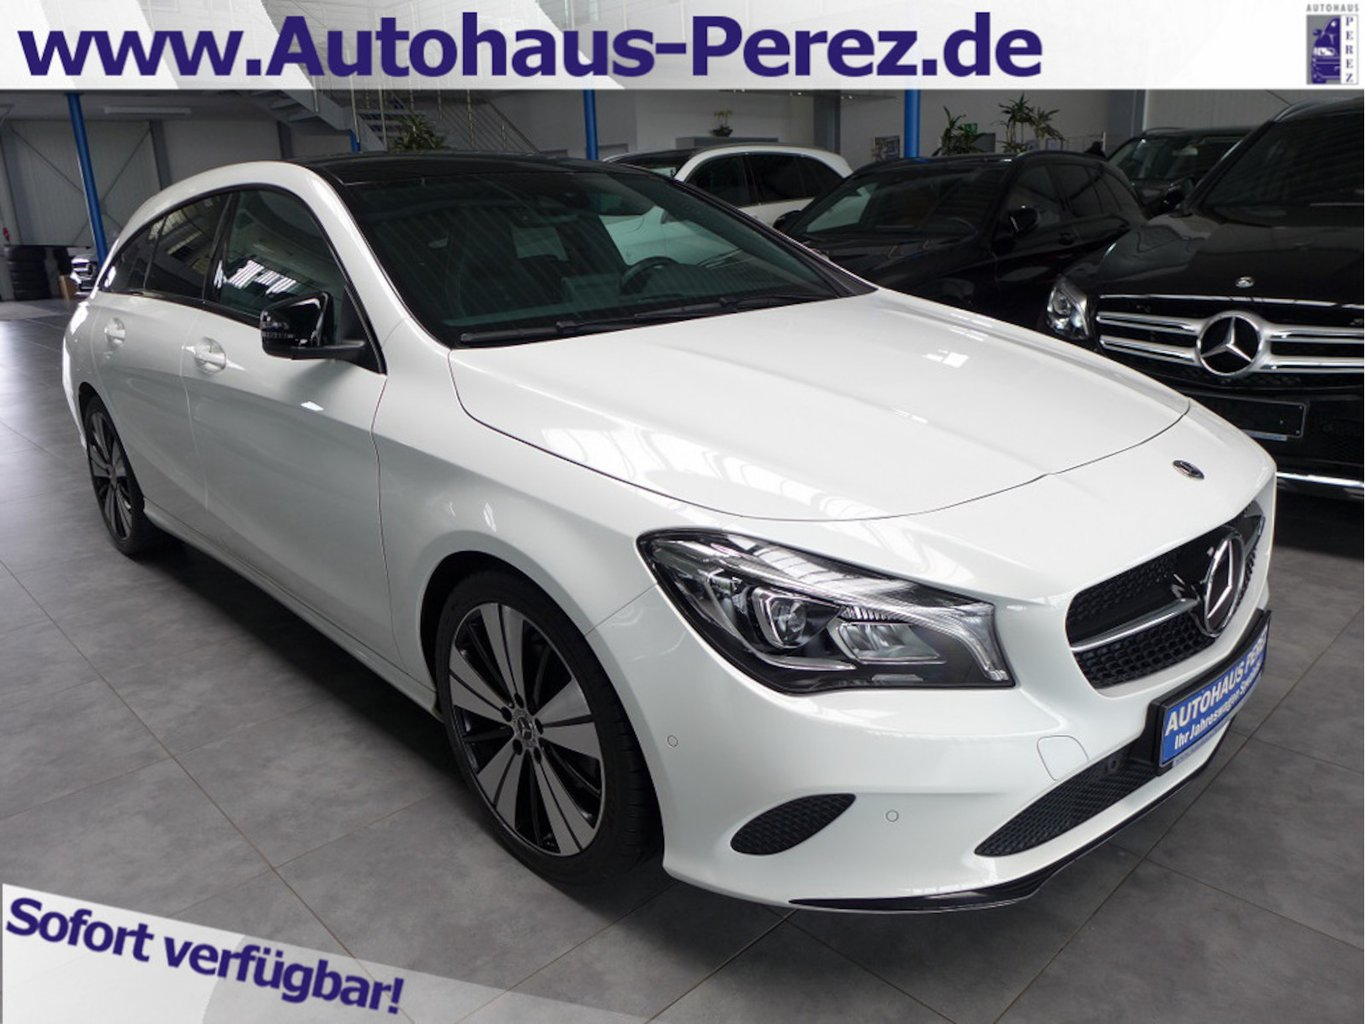 Mercedes-Benz CLA 250 Shooting Brake 7-G Urban NIGHT-AHK-PANO, Jahr 2018, Benzin